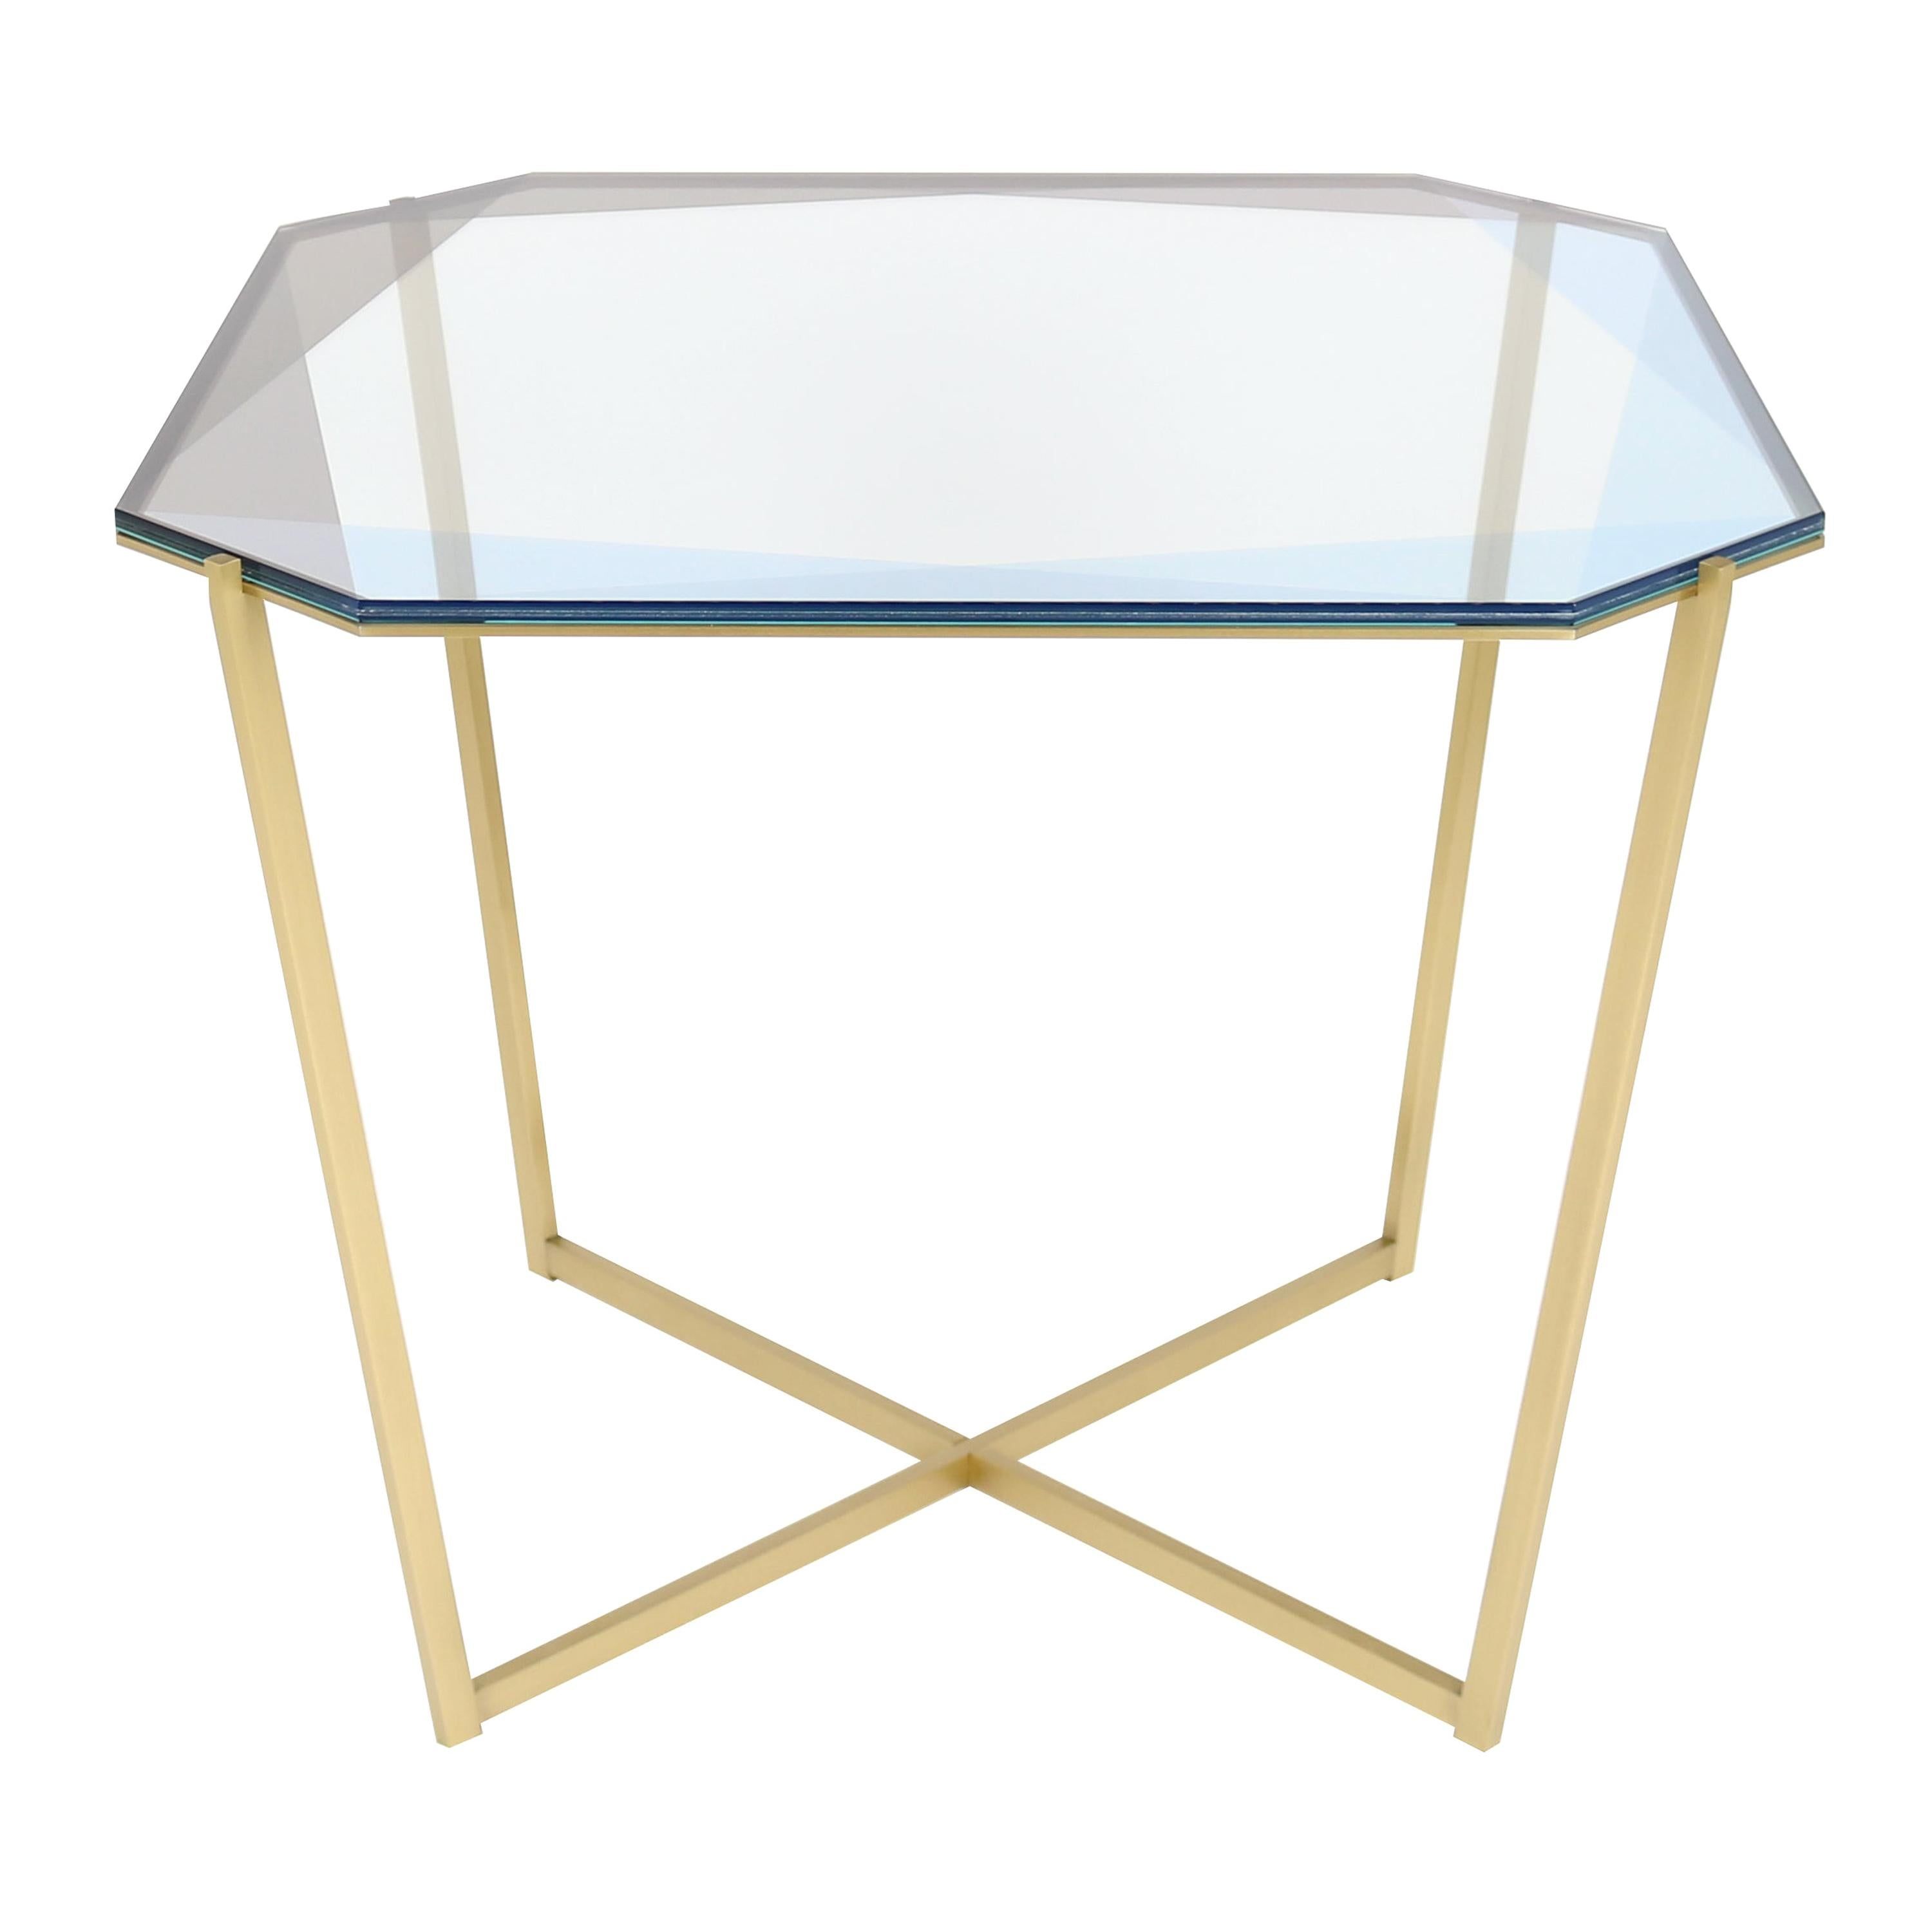 Gem Square Dining / Entry Table-Blue Glass with Brass Base by Debra Folz